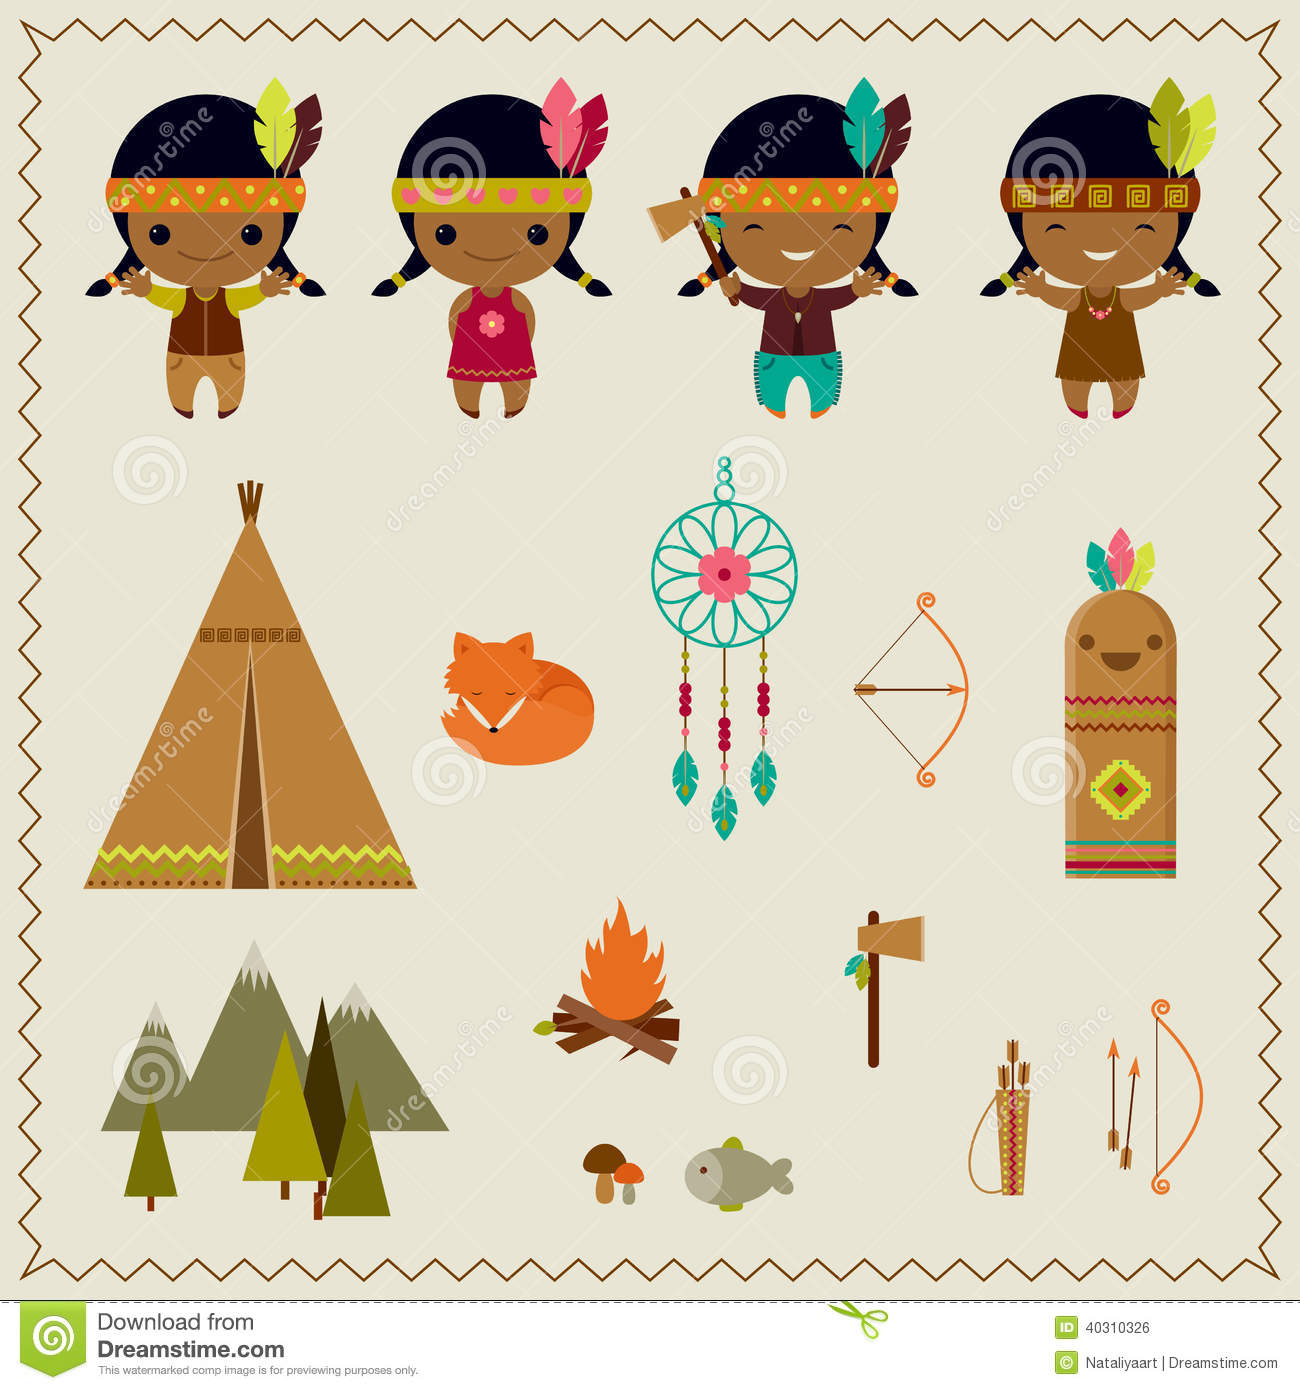 american indian clipart icons design stock vector illustration of rh dreamstime com clipart indian wedding clipart indians black and white